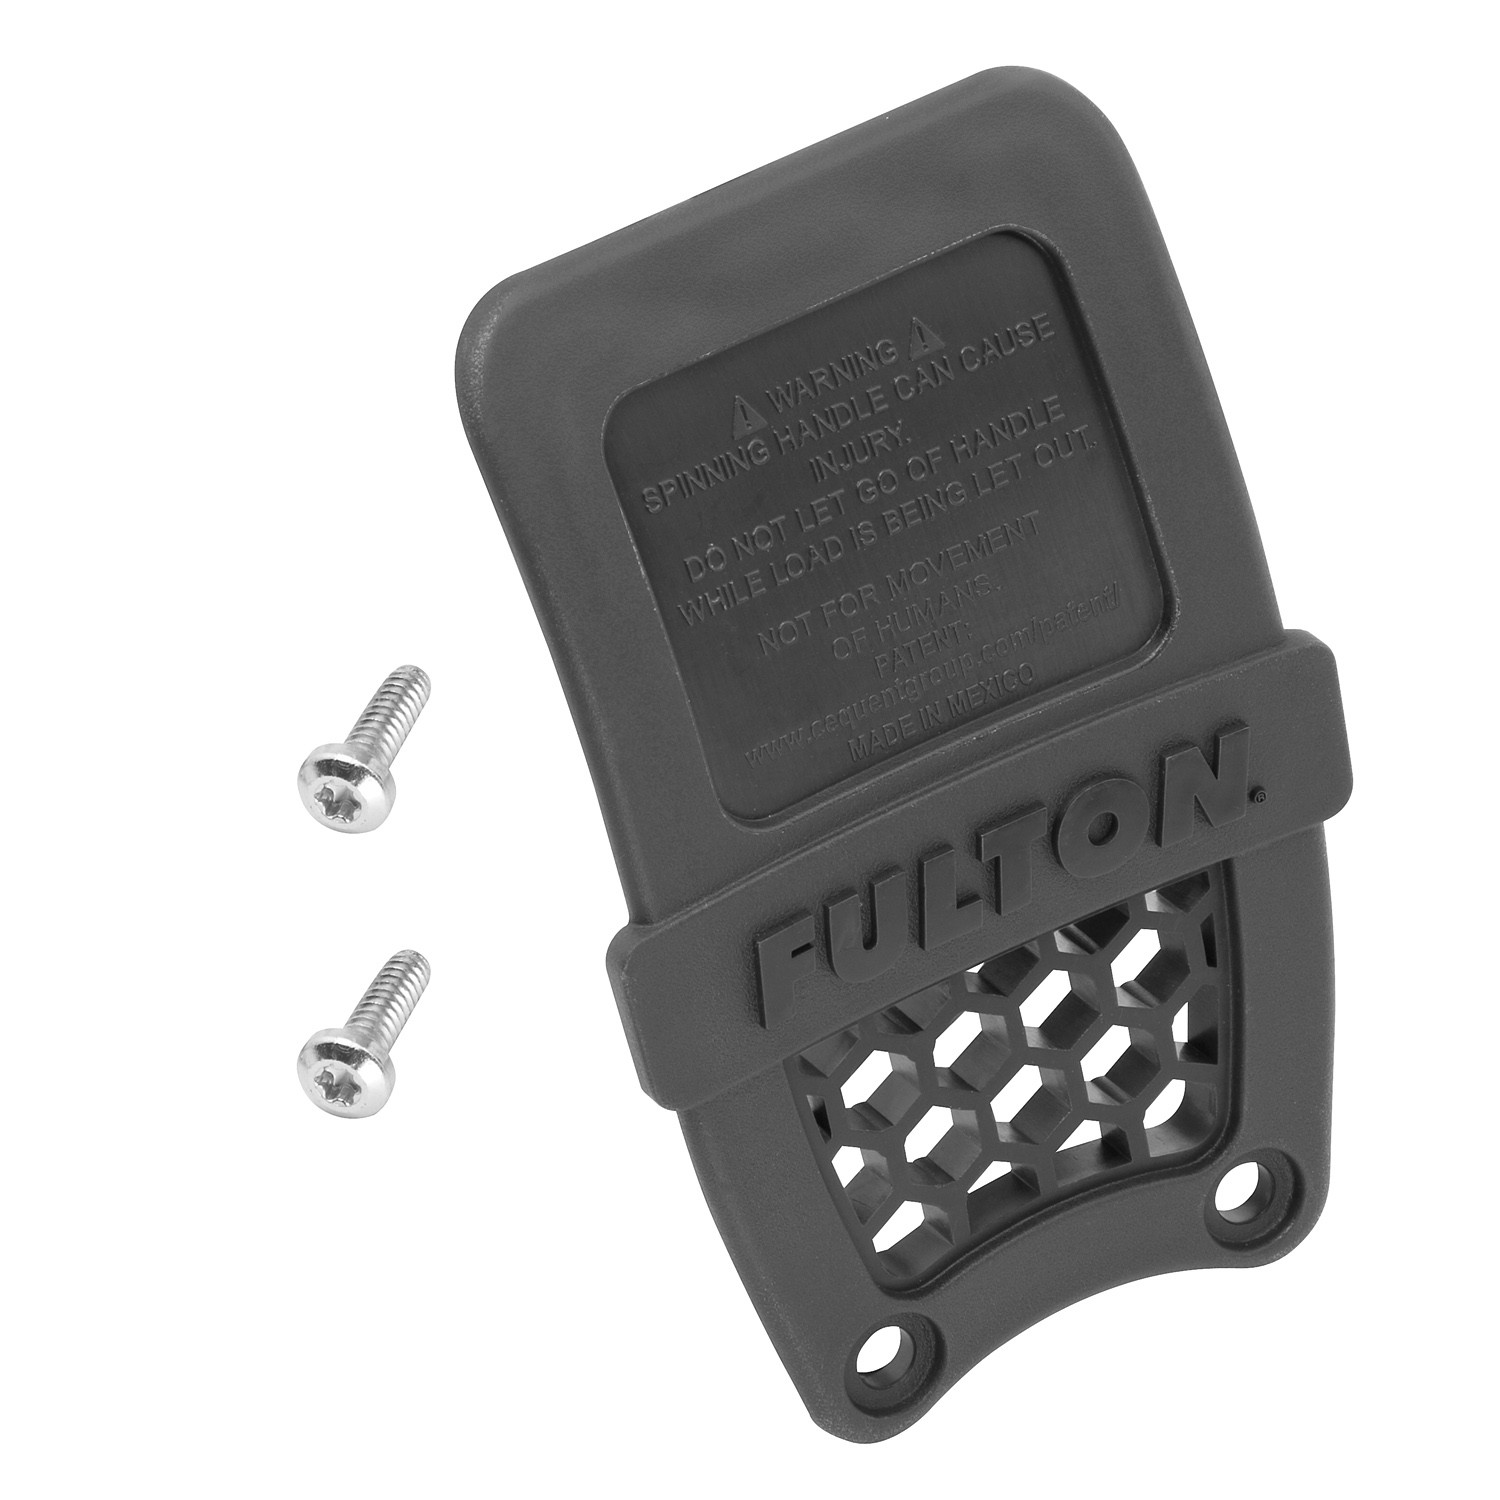 Replacement Top Cover for Fulton F2® Series Winches